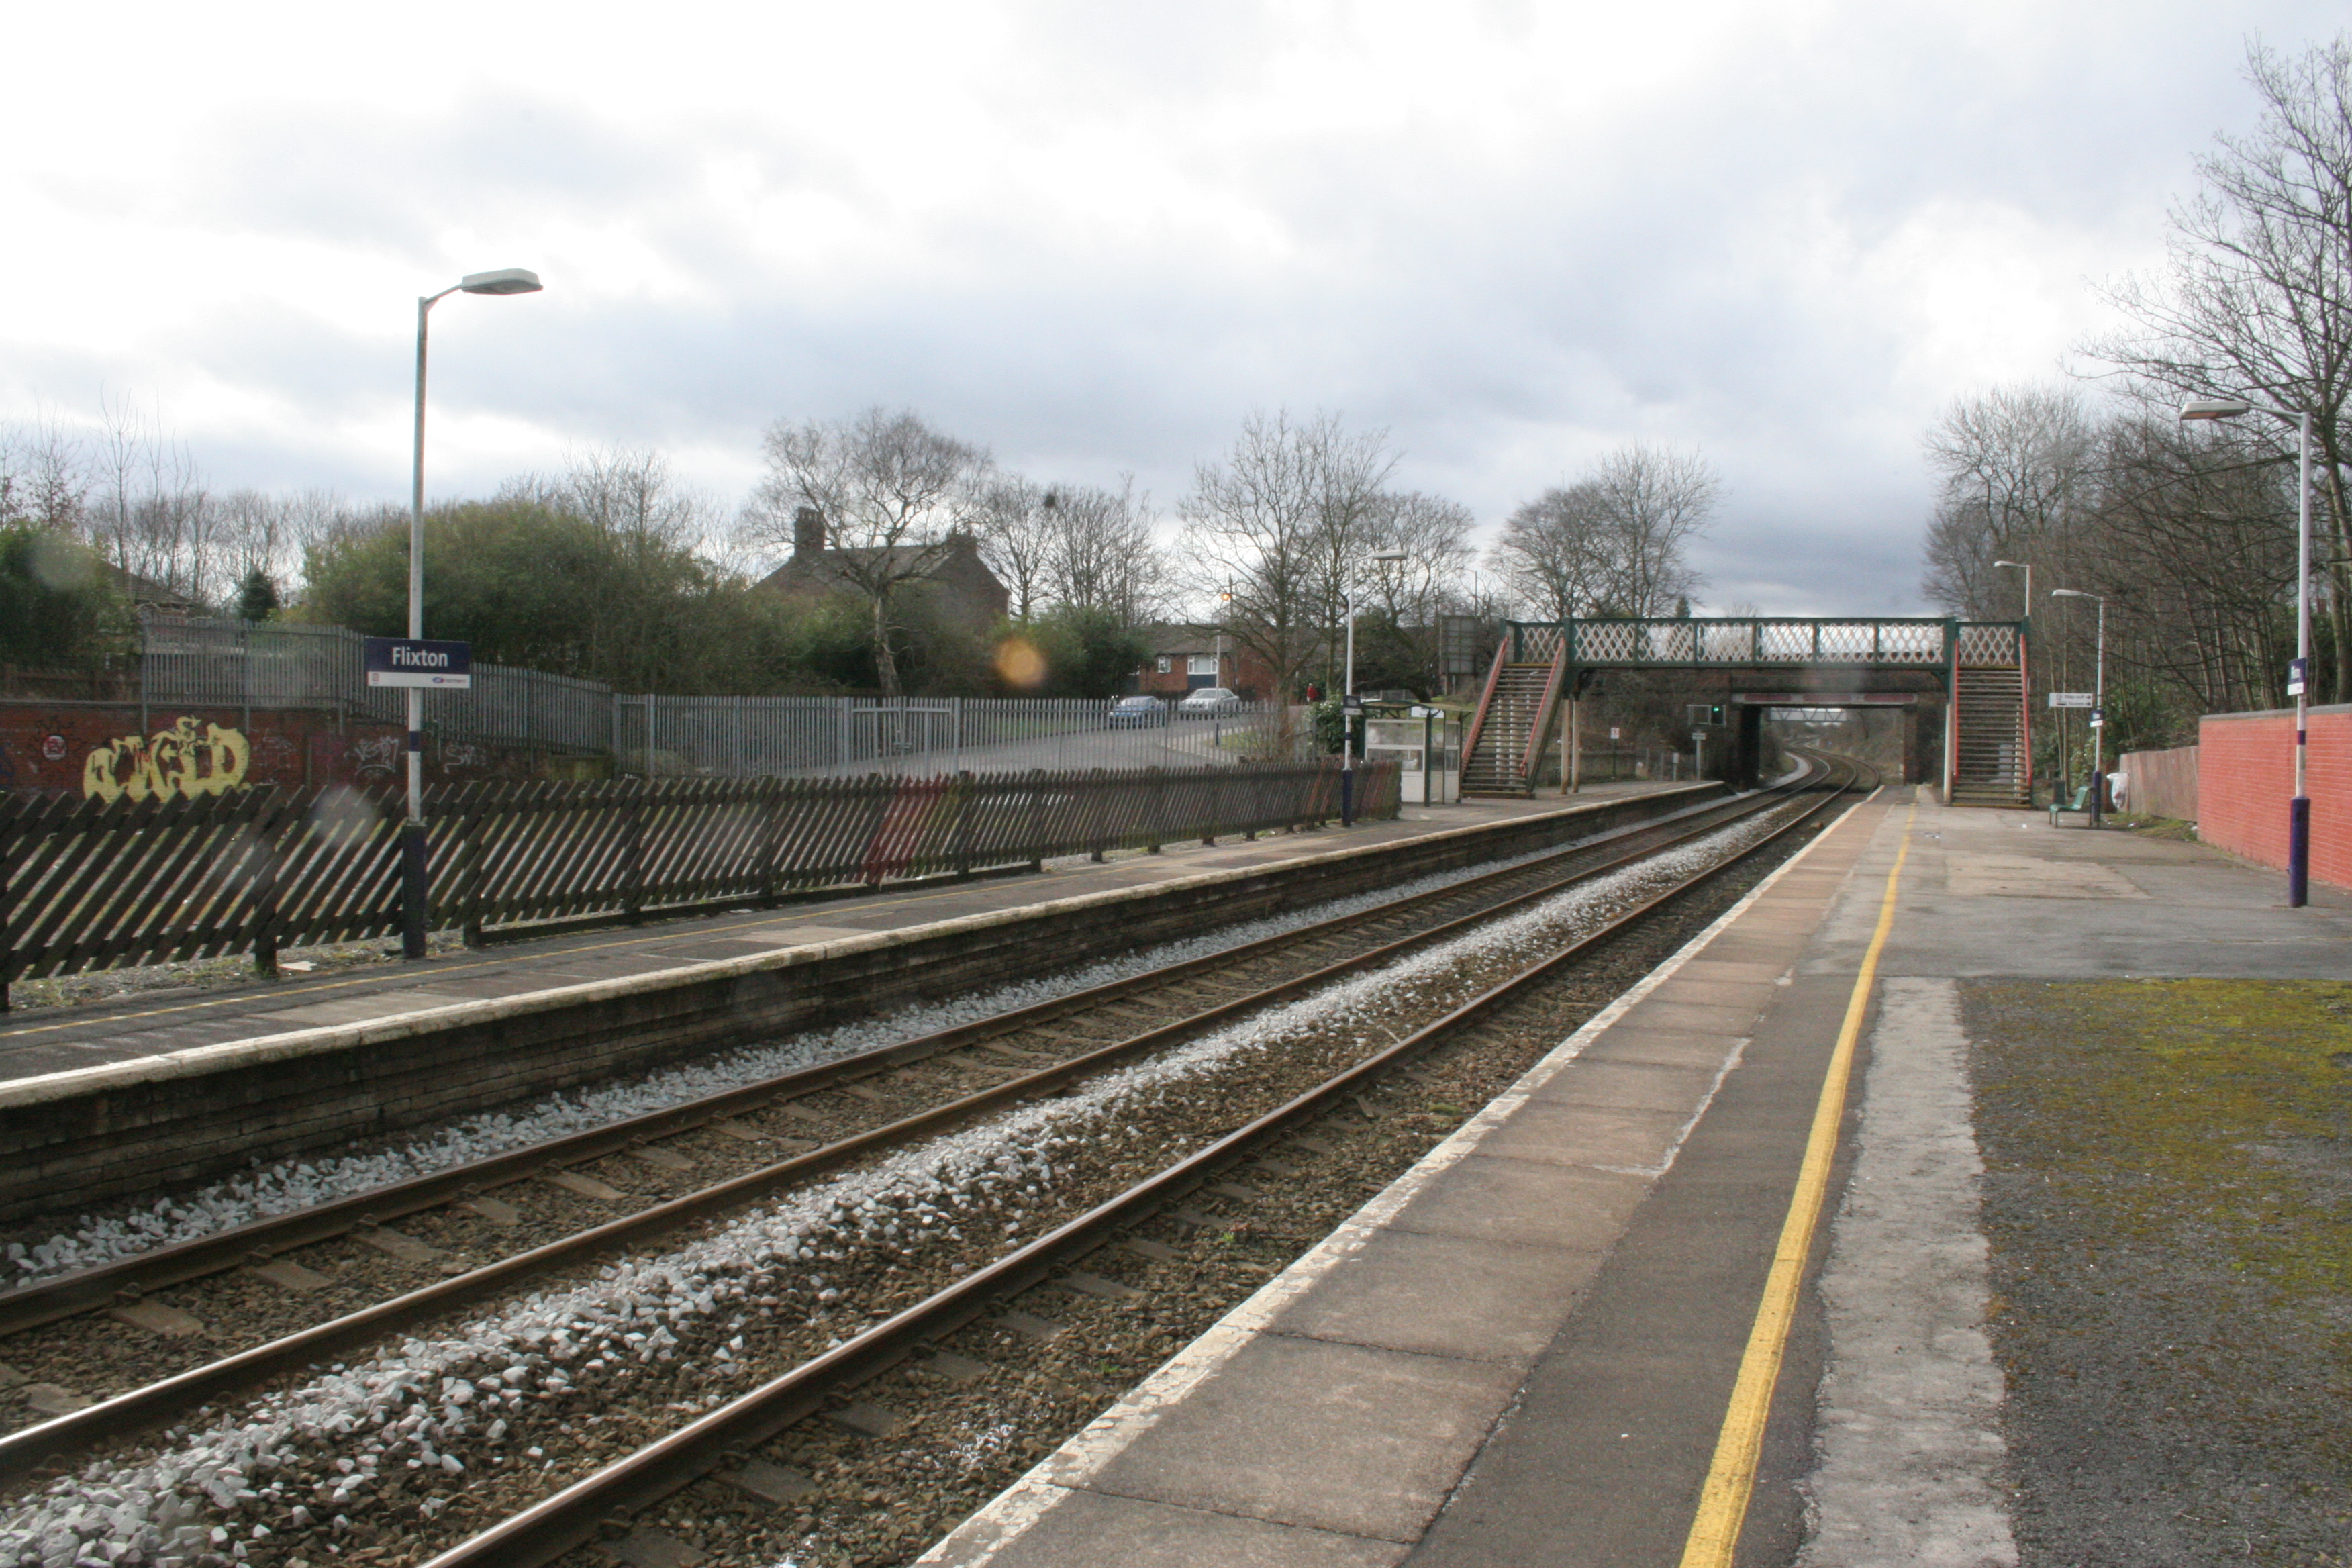 File:Flixton railway station manchester looking west.jpg ...